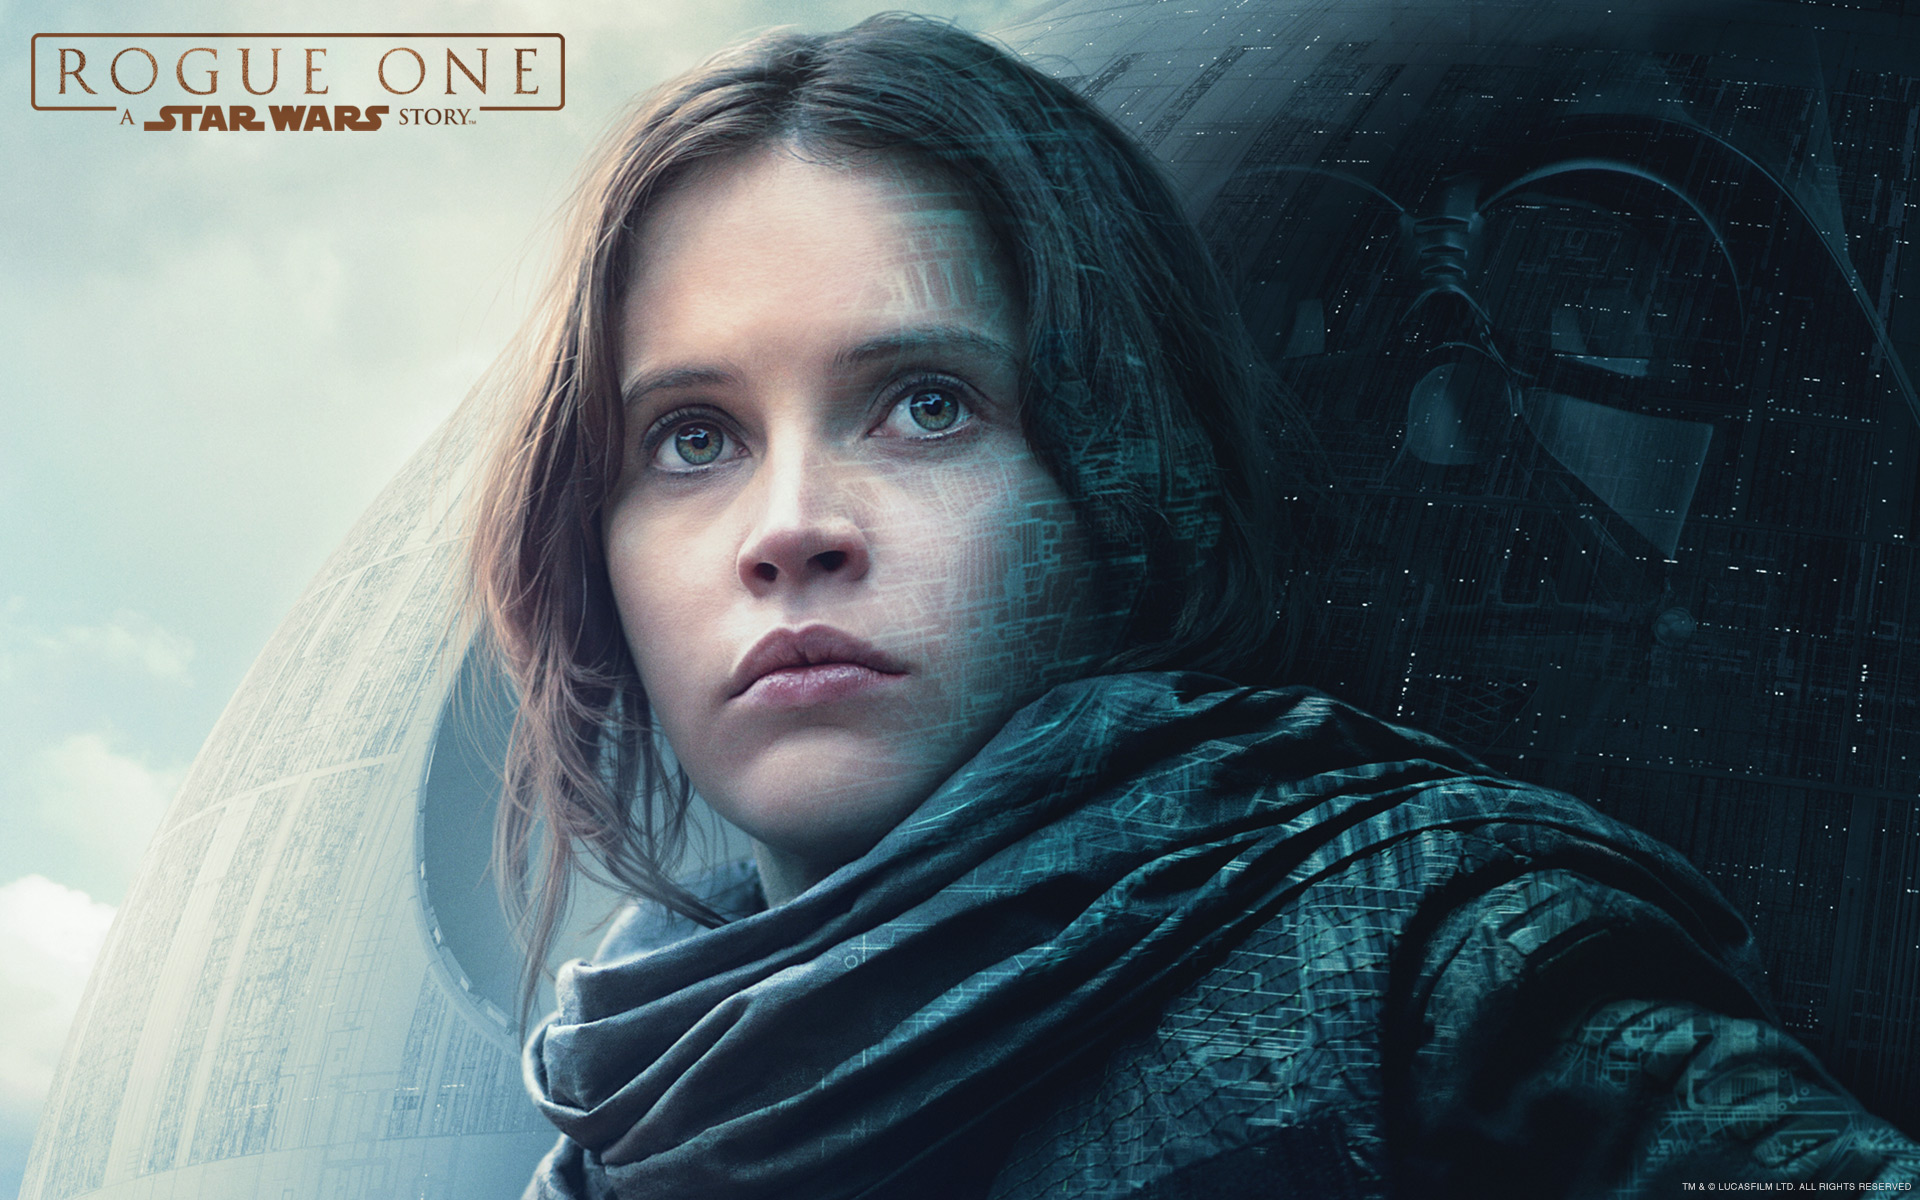 rogueone-poster2-wallpaper